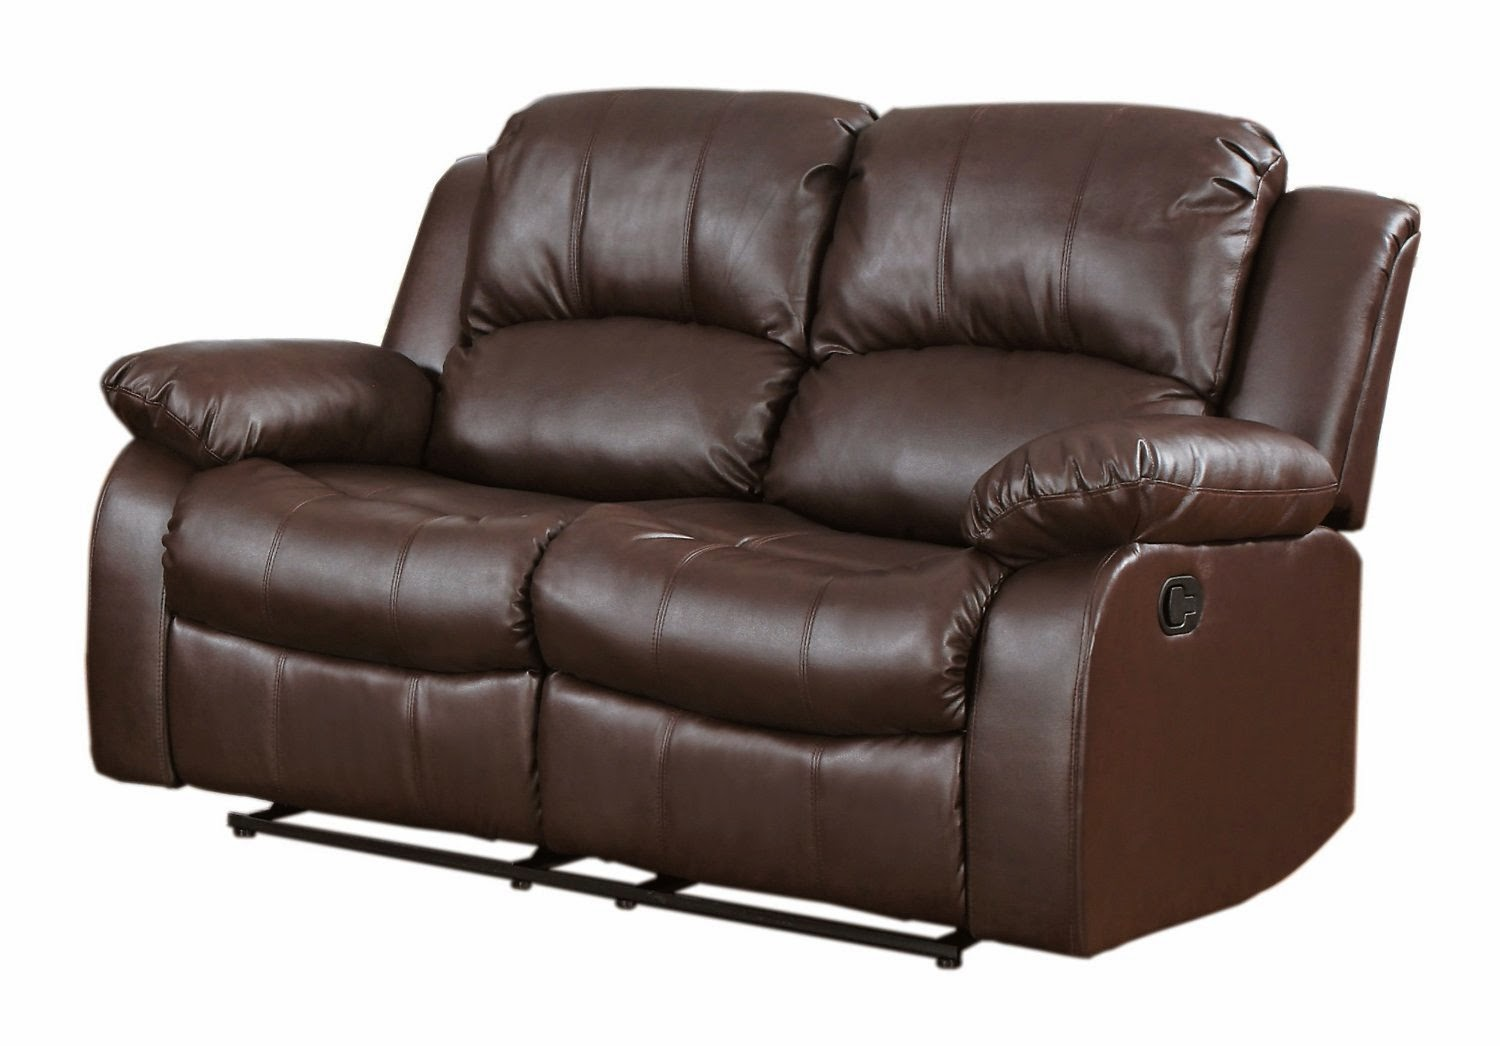 Where Is The Best Place To Buy Recliner Sofa 2 Seater Electric Recliner Leather Sofa